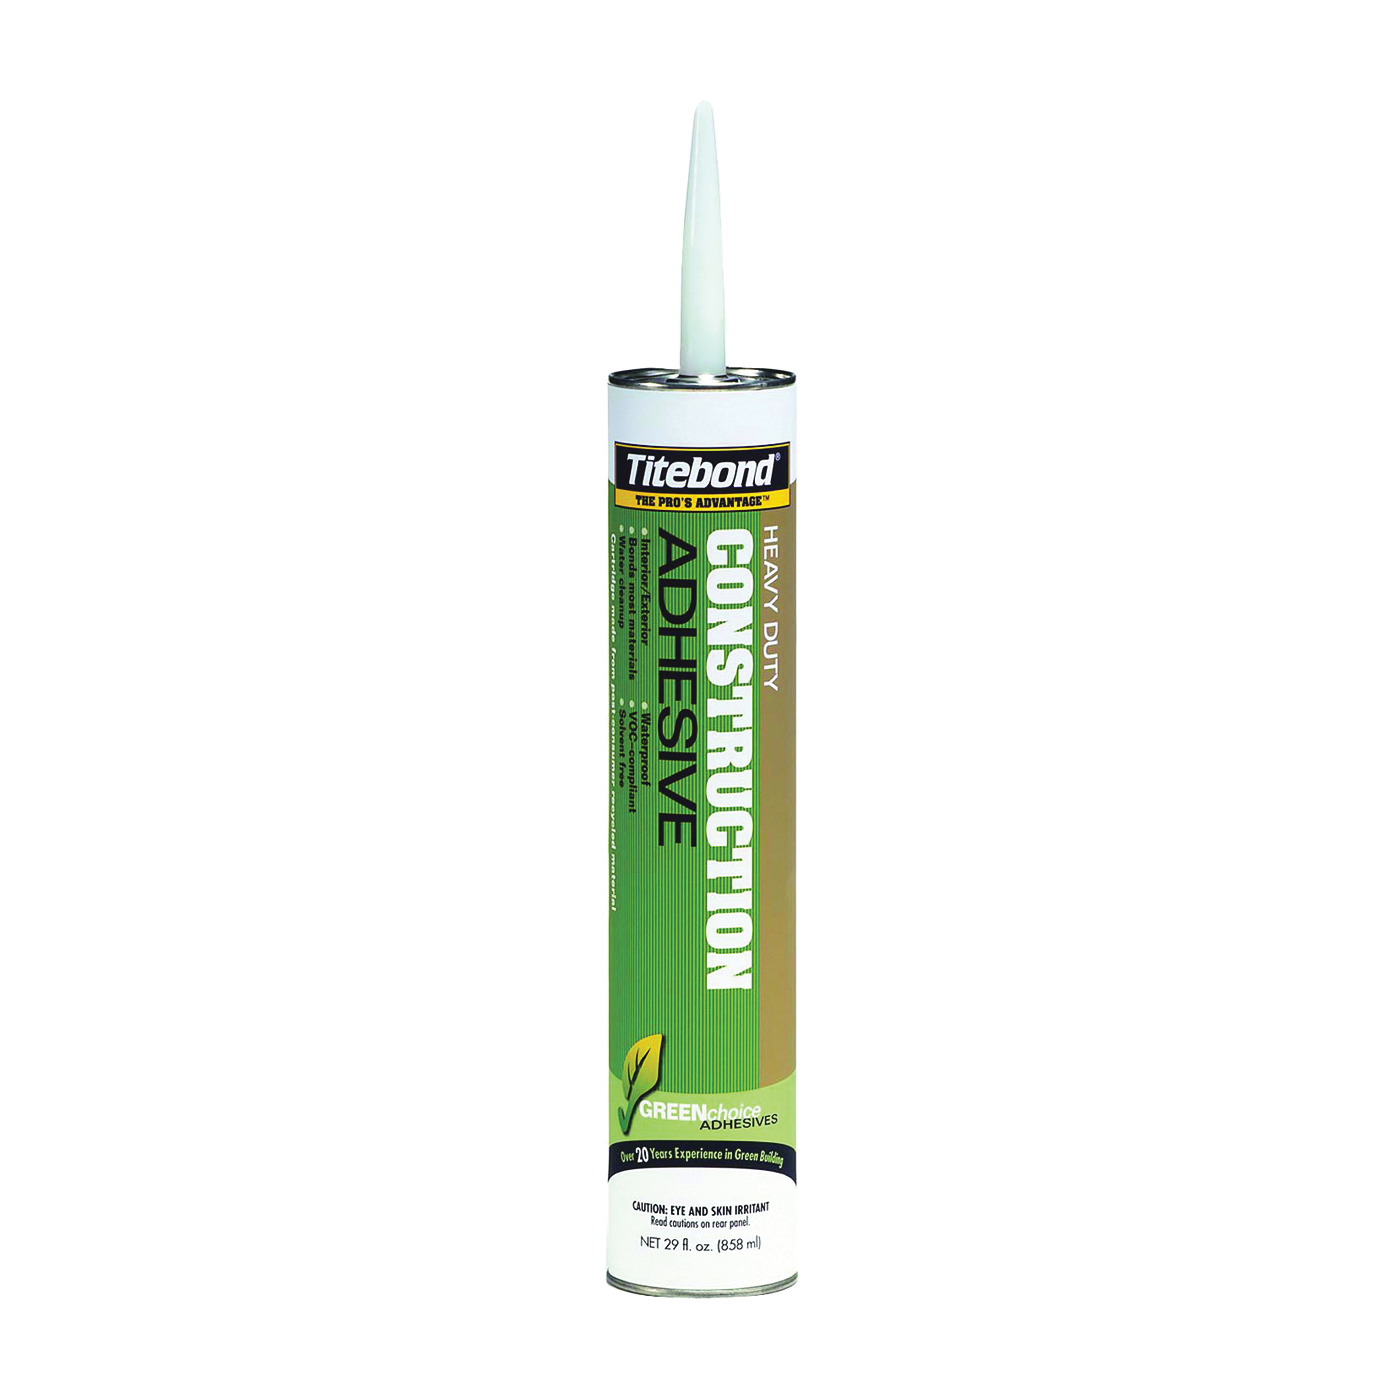 Picture of Titebond 7472 Construction Adhesive, Beige, 28 oz Package, Cartridge